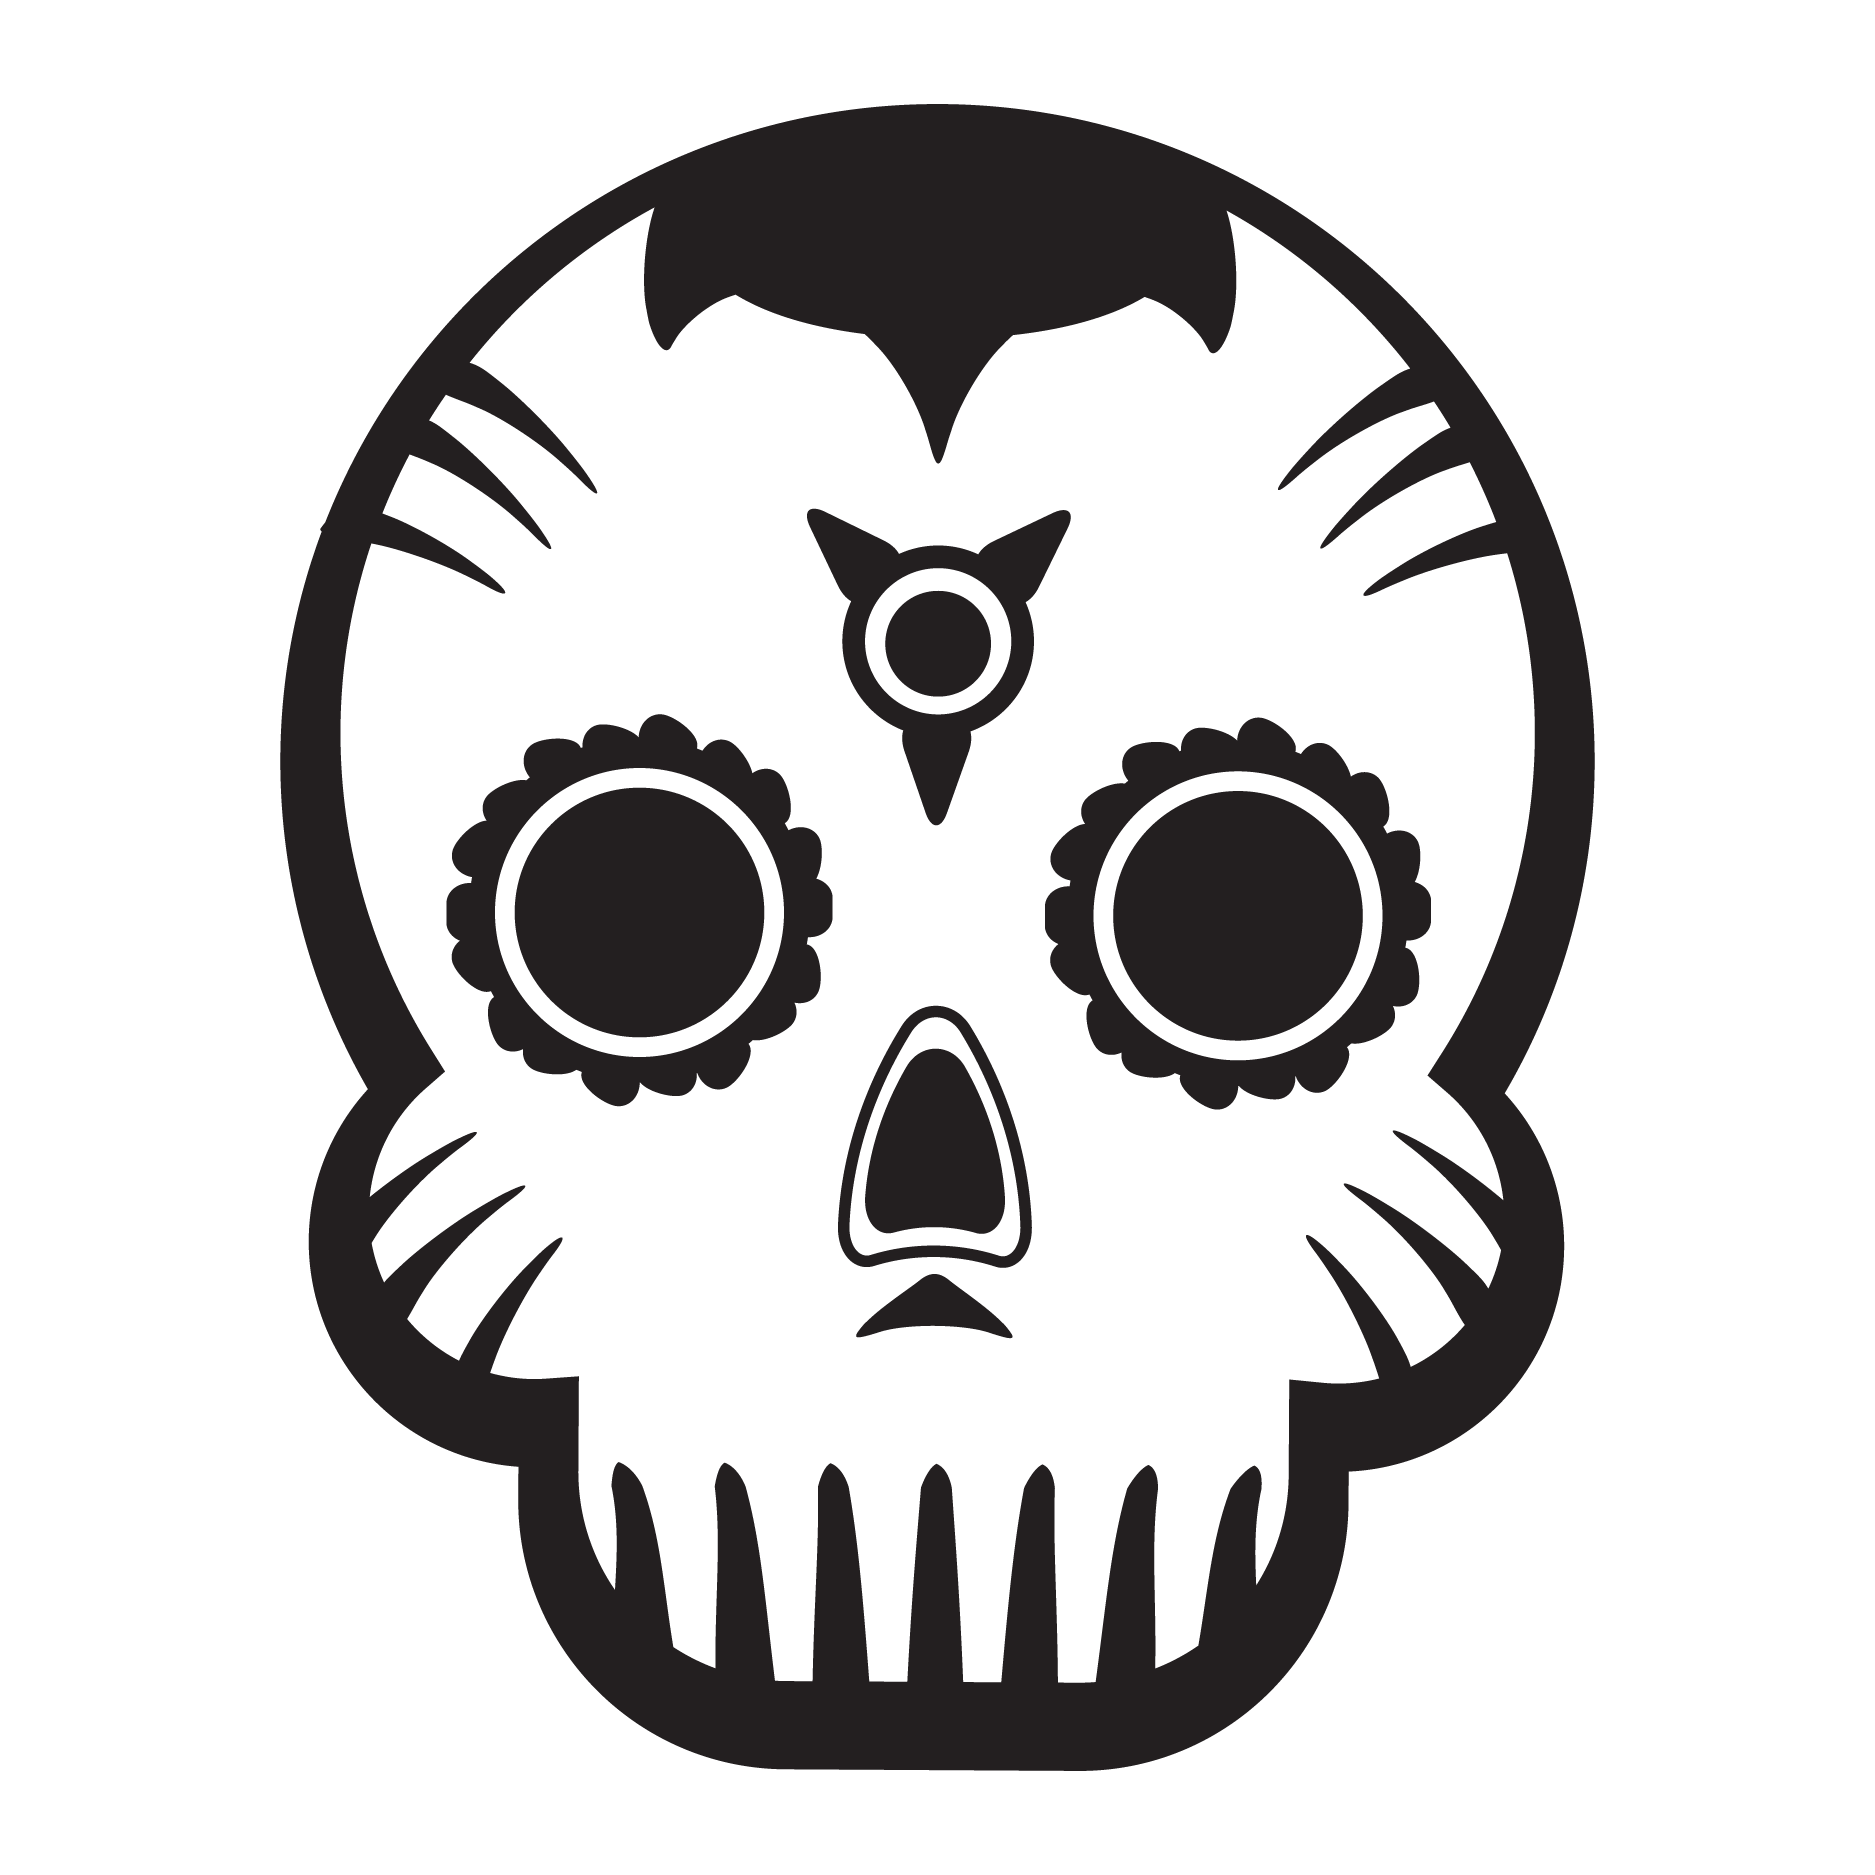 Simple day of the dead skull pixshark images